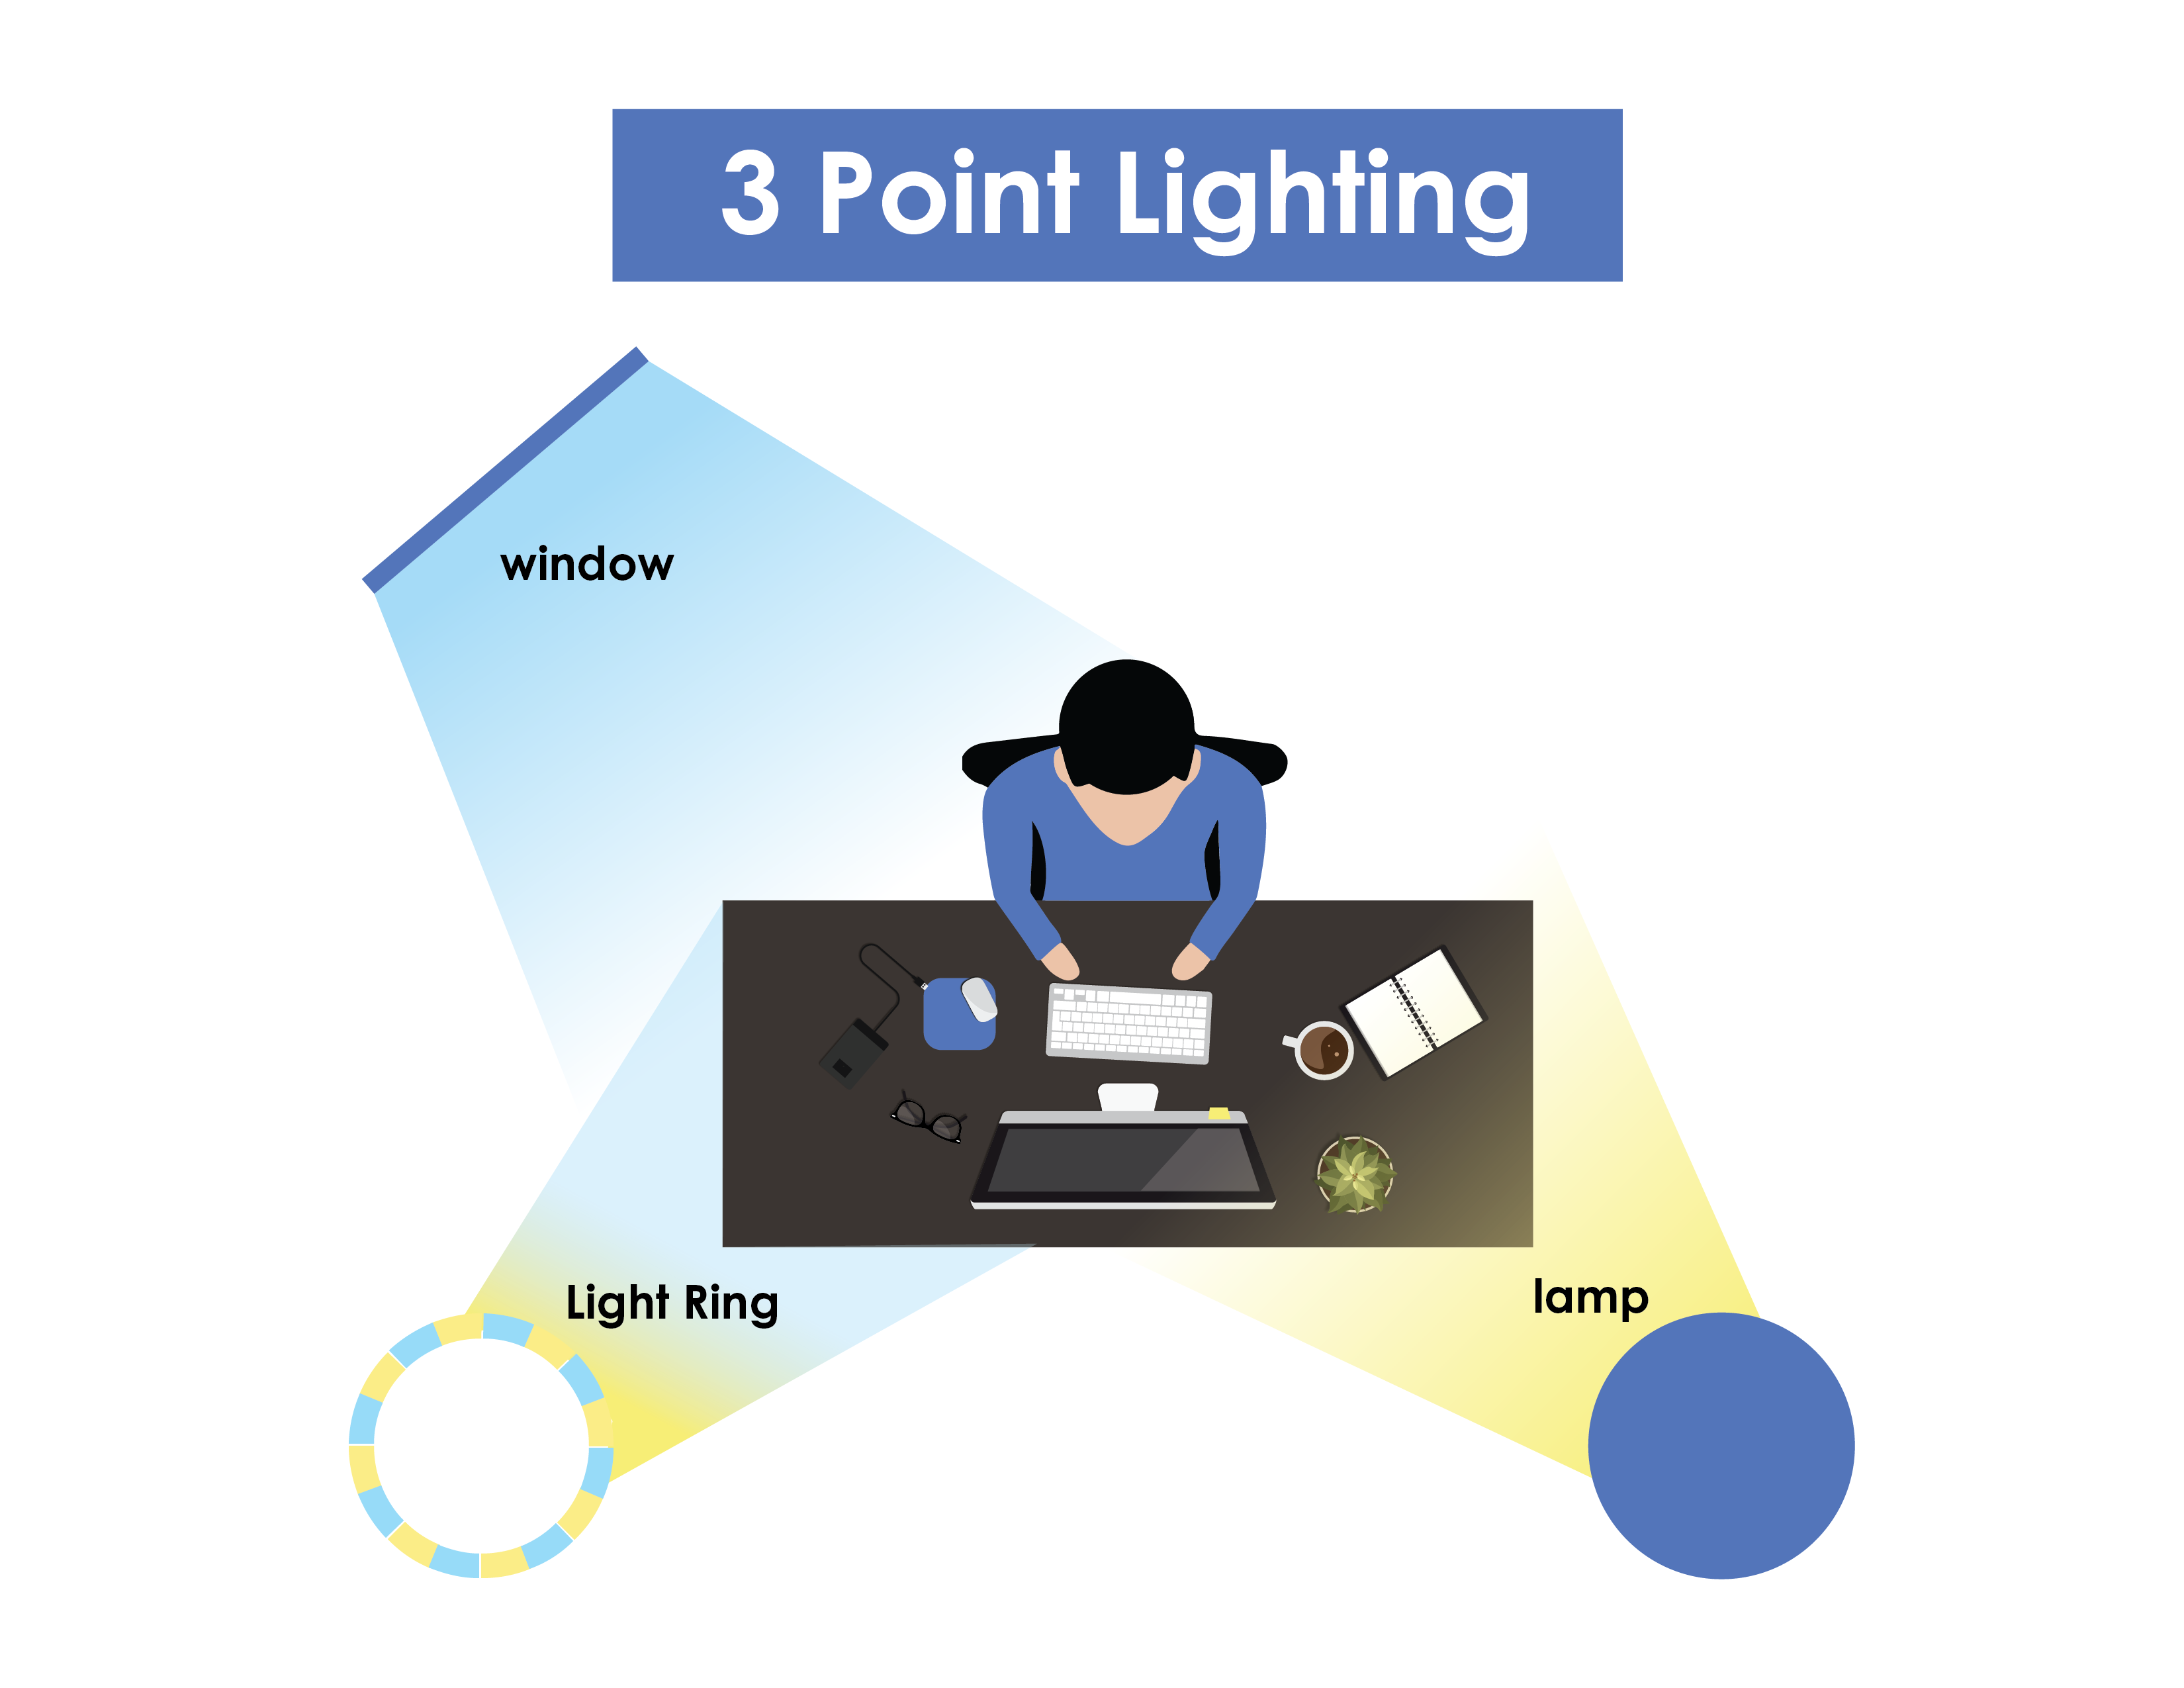 3 Point Lighting (WFH)